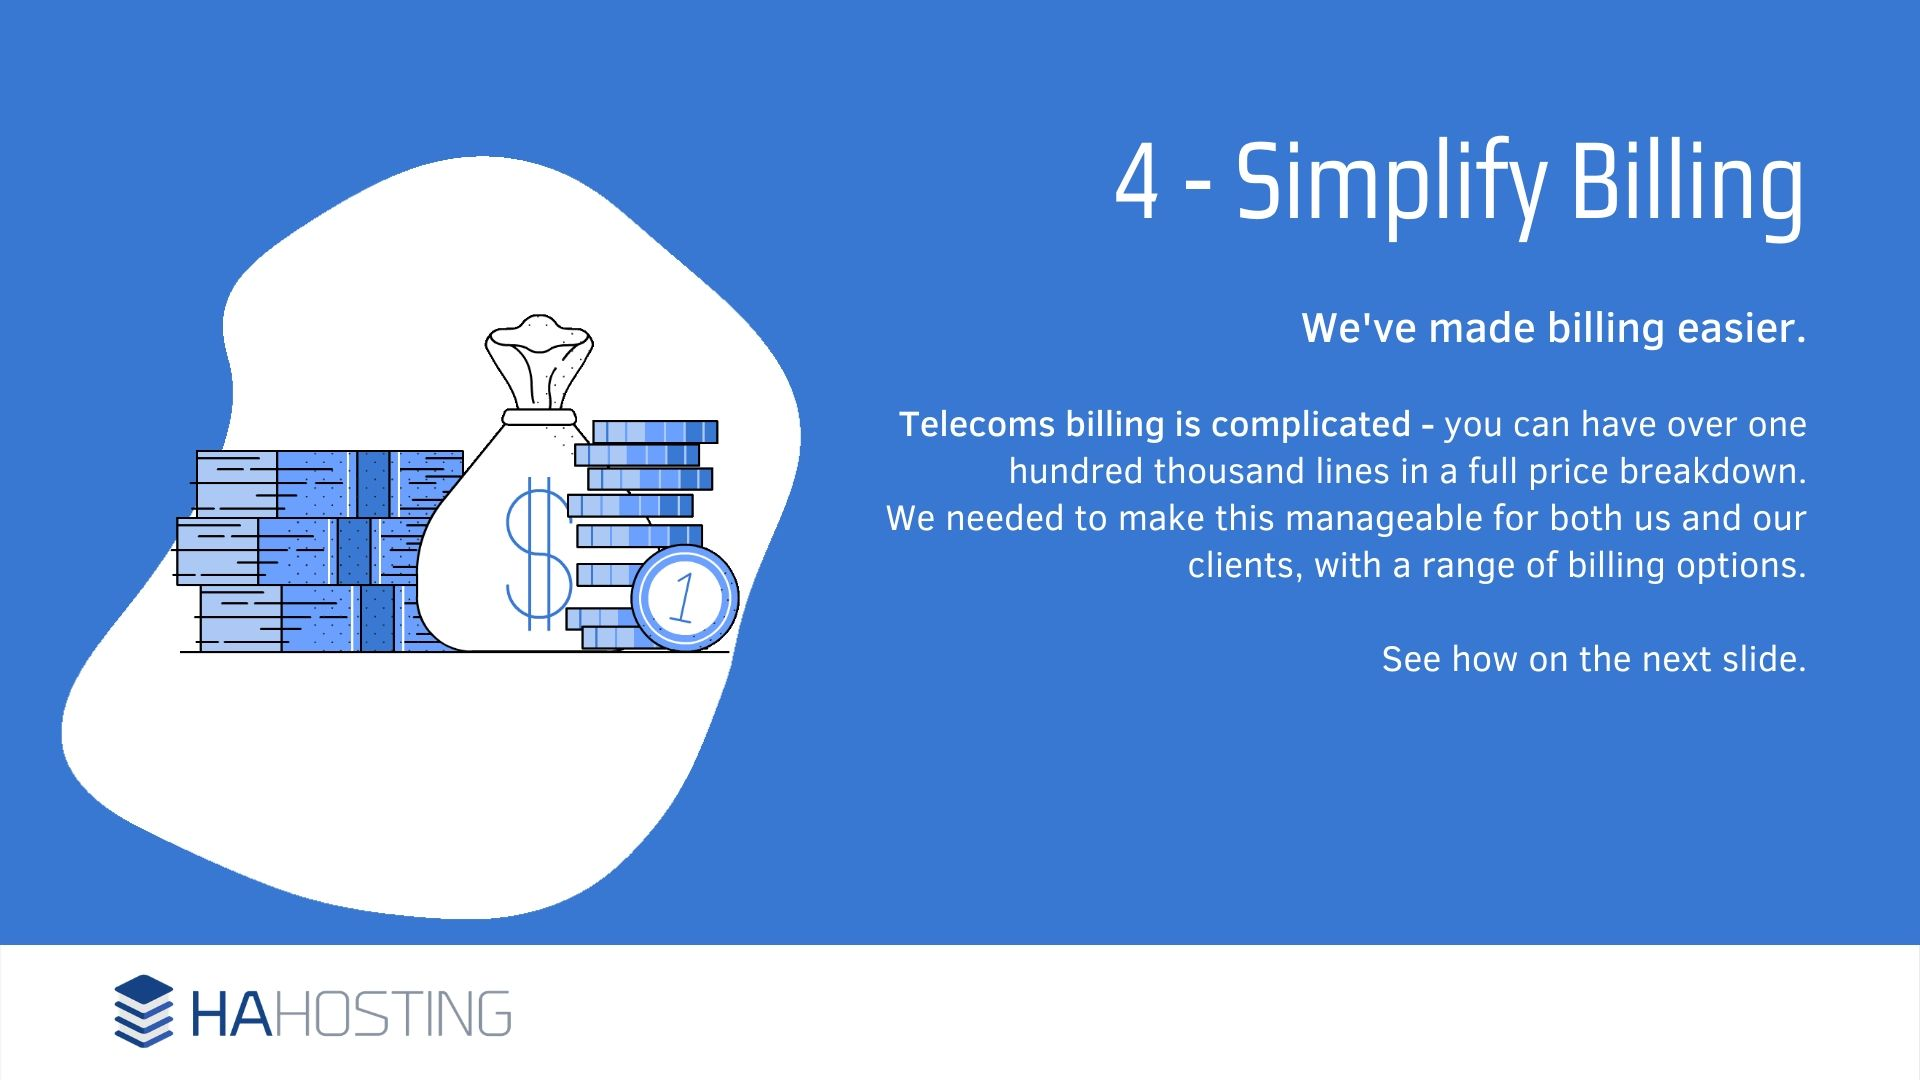 Simplified billing - We've made billing easier. Telecoms billing is complicated - you can have over one hundred thousand lines in a full price breakdown. We needed to make this manageable for both us and our clients, with a range of billing options. See how on the next slide.